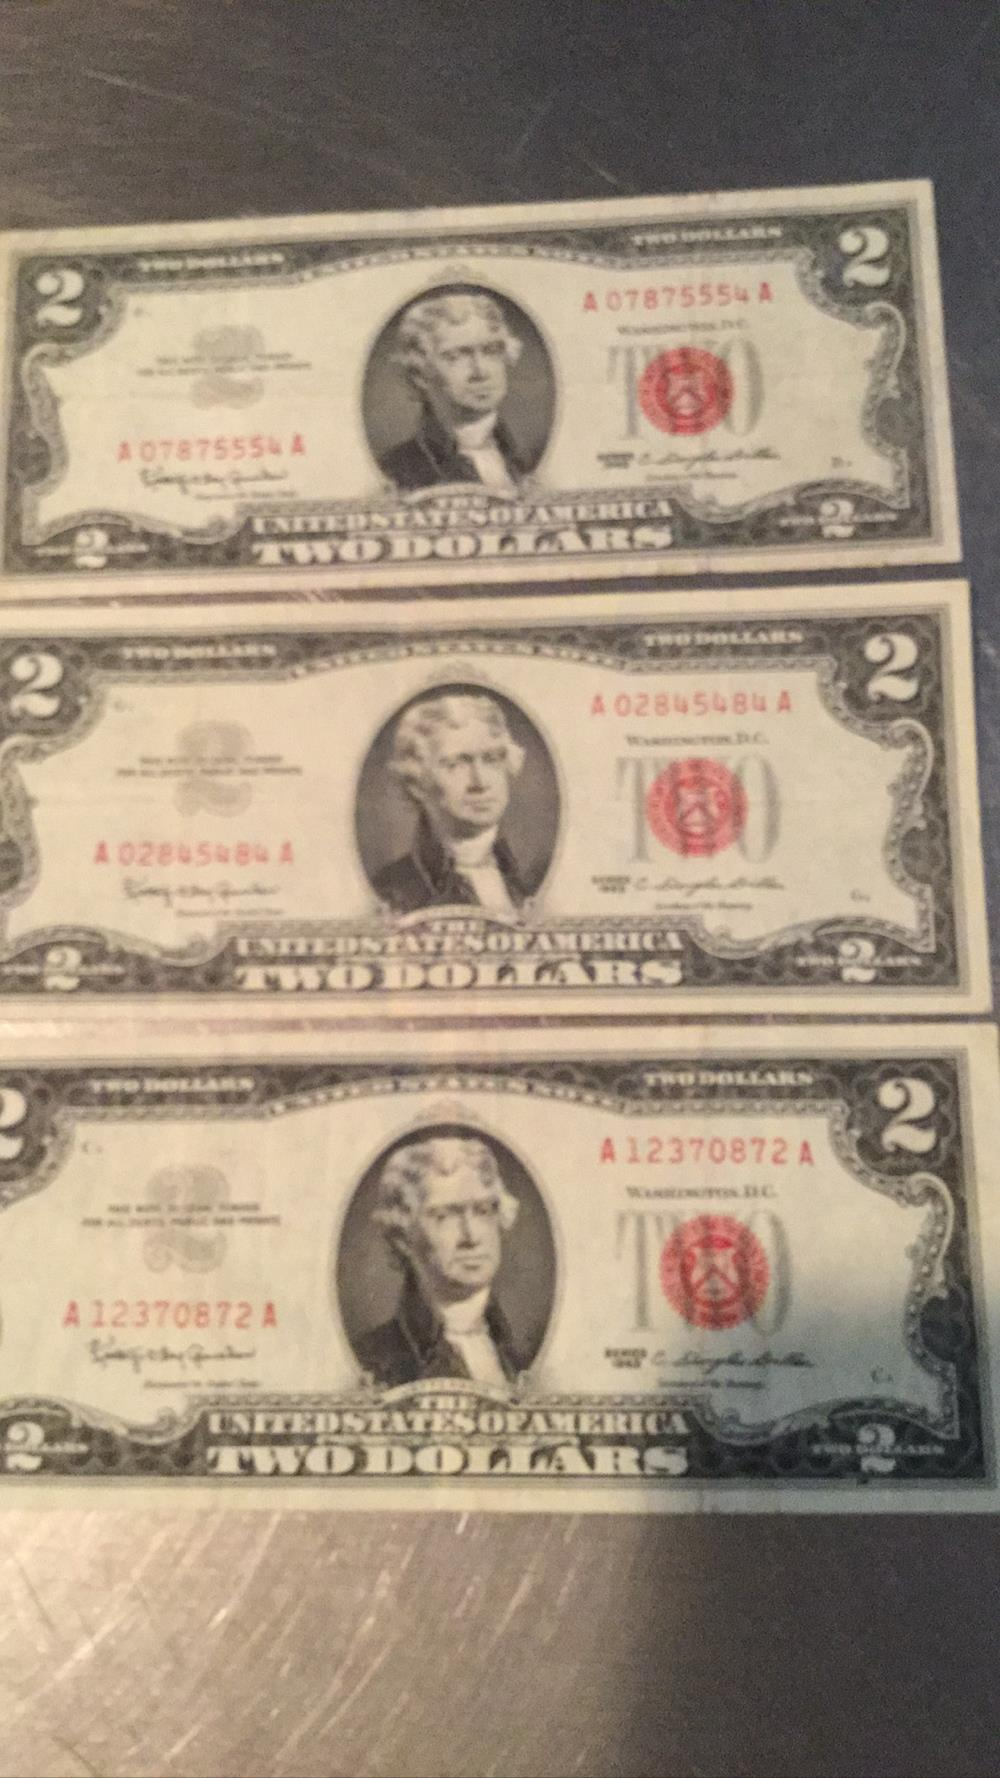 Three 2 dollar bills